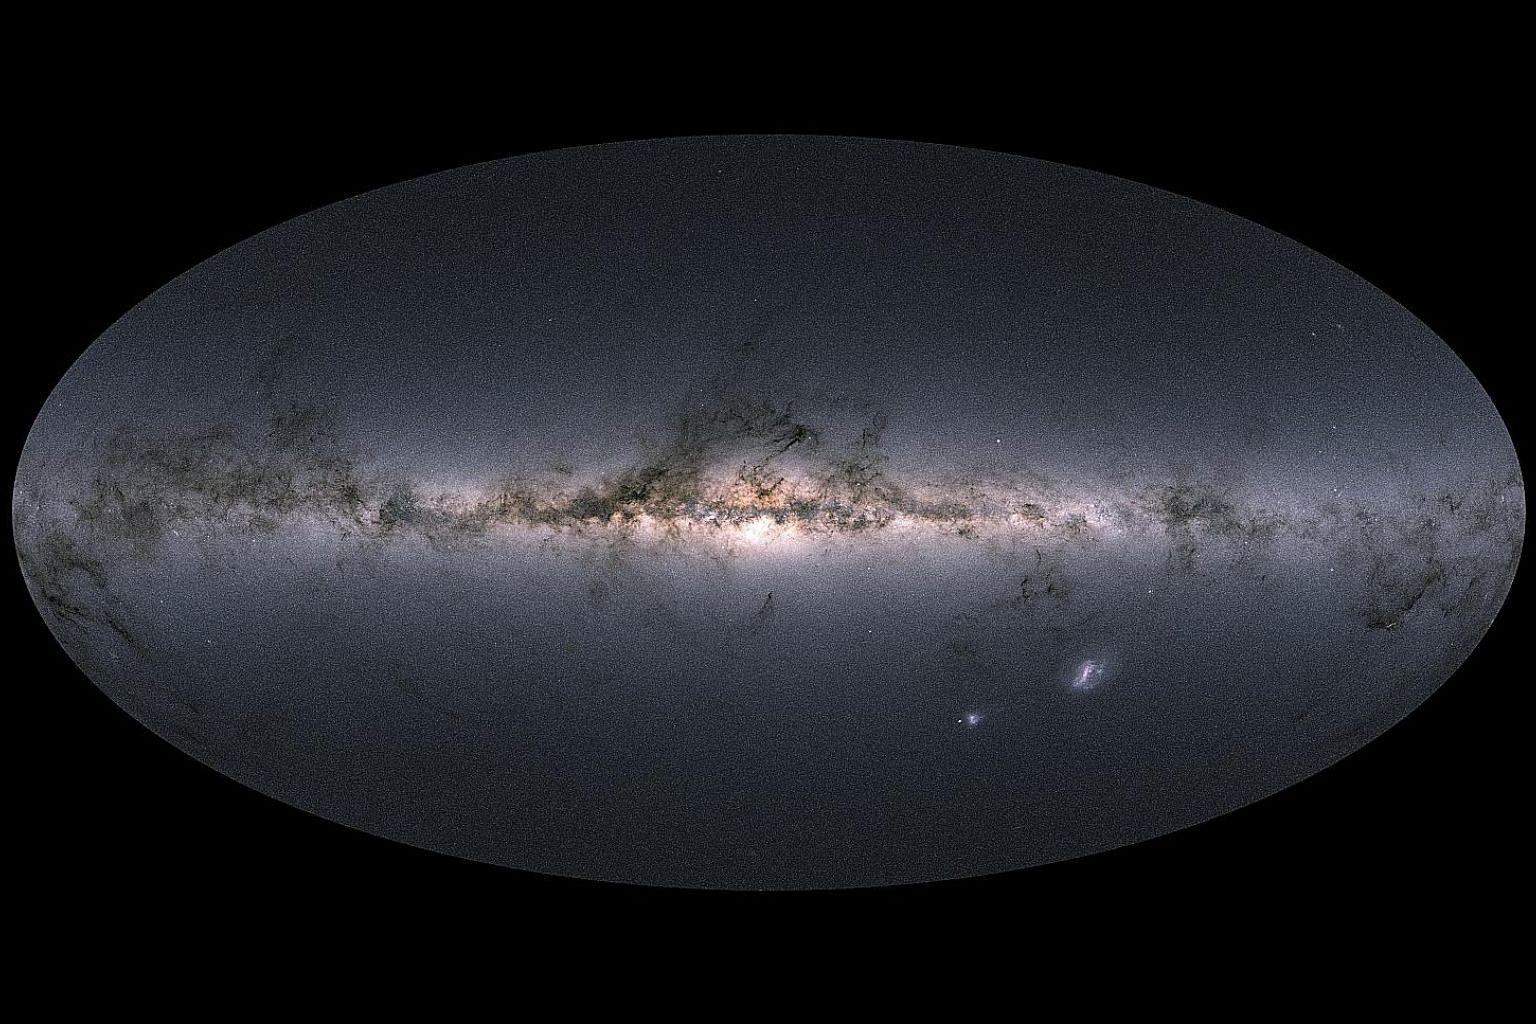 A view of the Milky Way and neighbouring galaxies, containing more than a billion stars in an image provided by the European Space Agency.